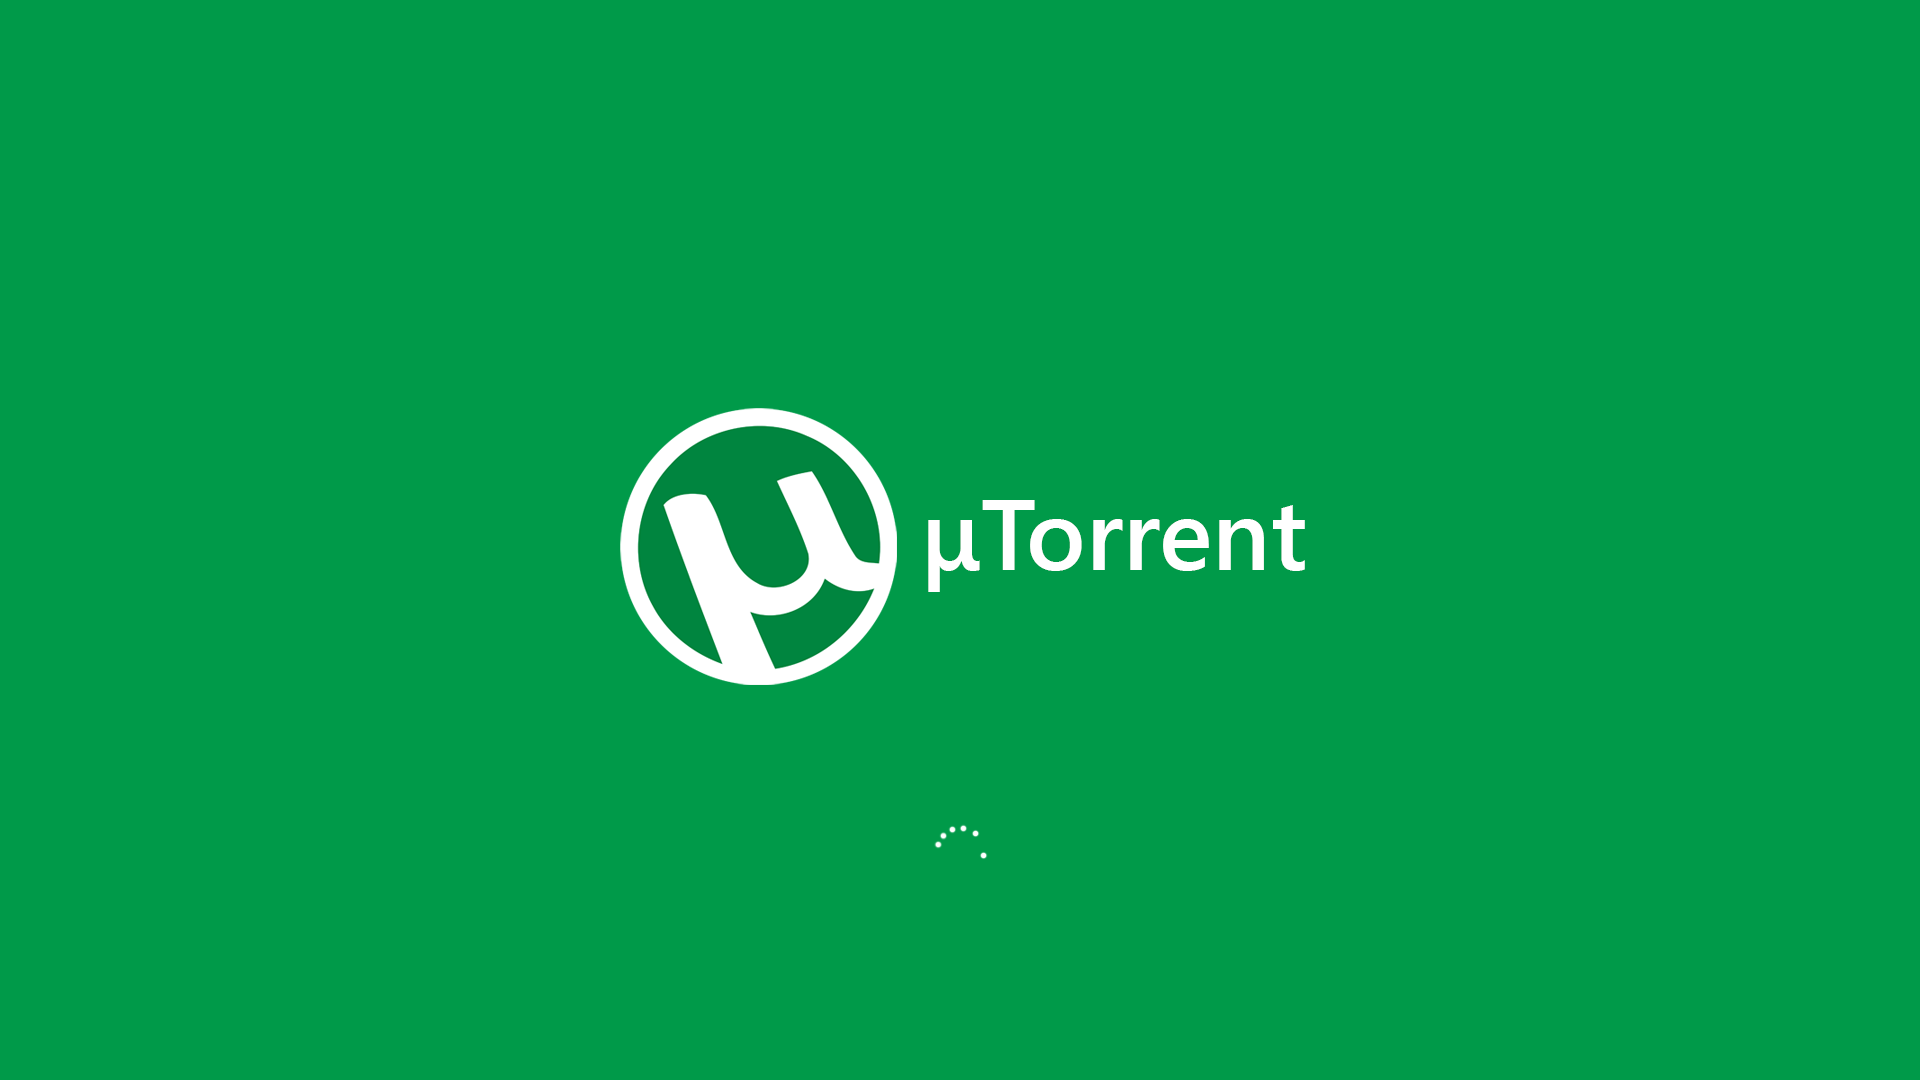 utorrent_metro_app_splash_screen_concept_by_wango911-d4hq1vk